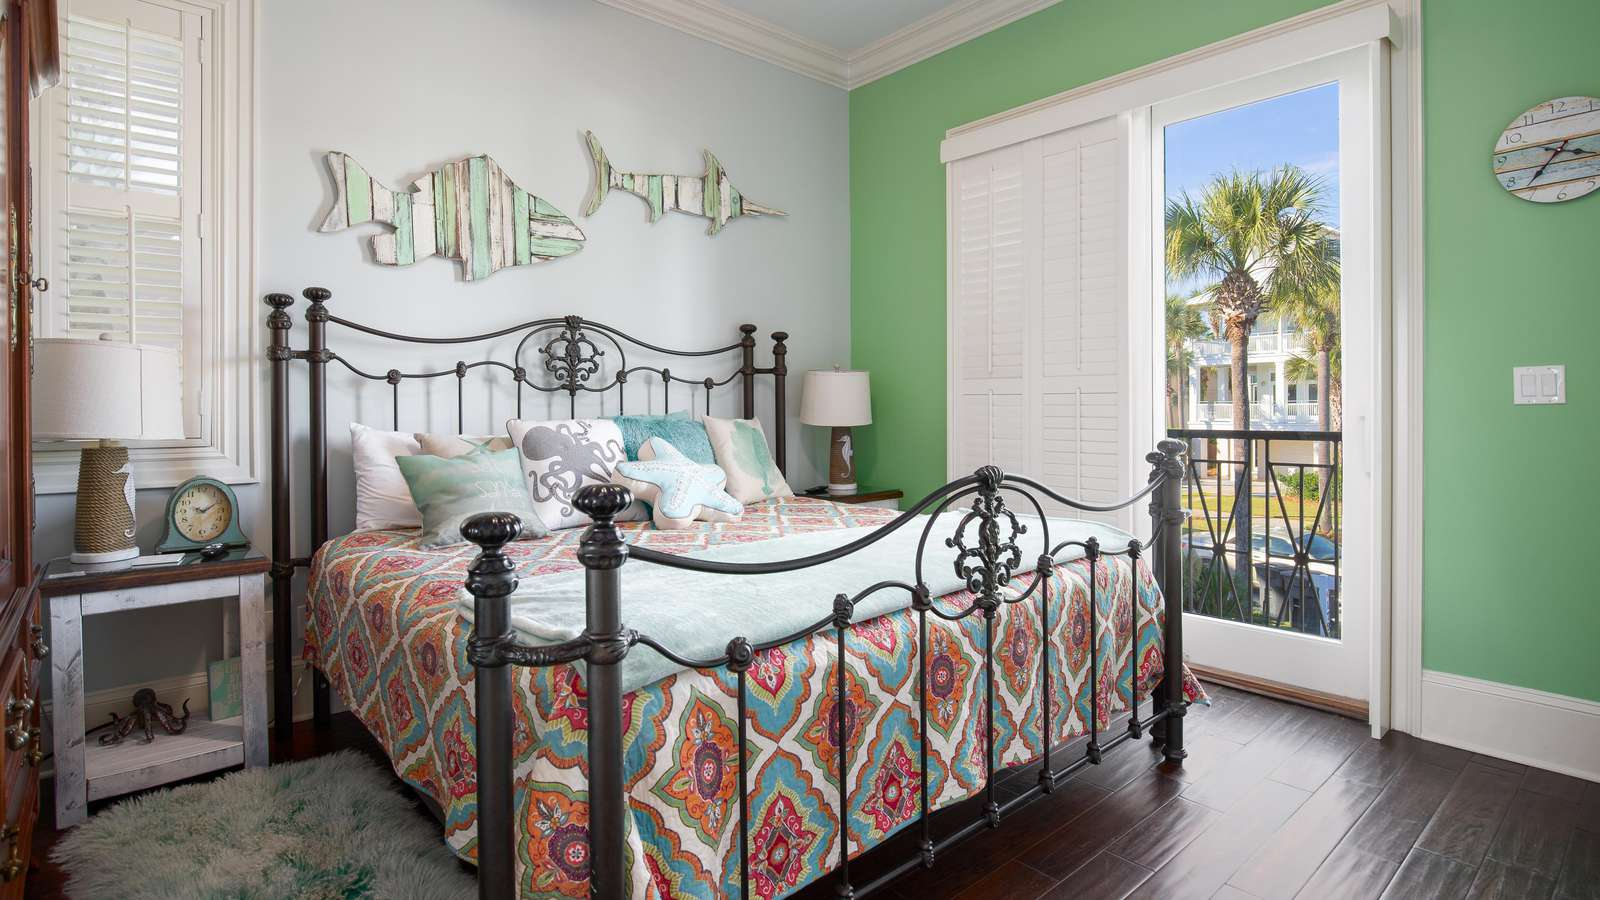 The 3rd bedroom features a king sized bed, private balcony, and full bathroom.